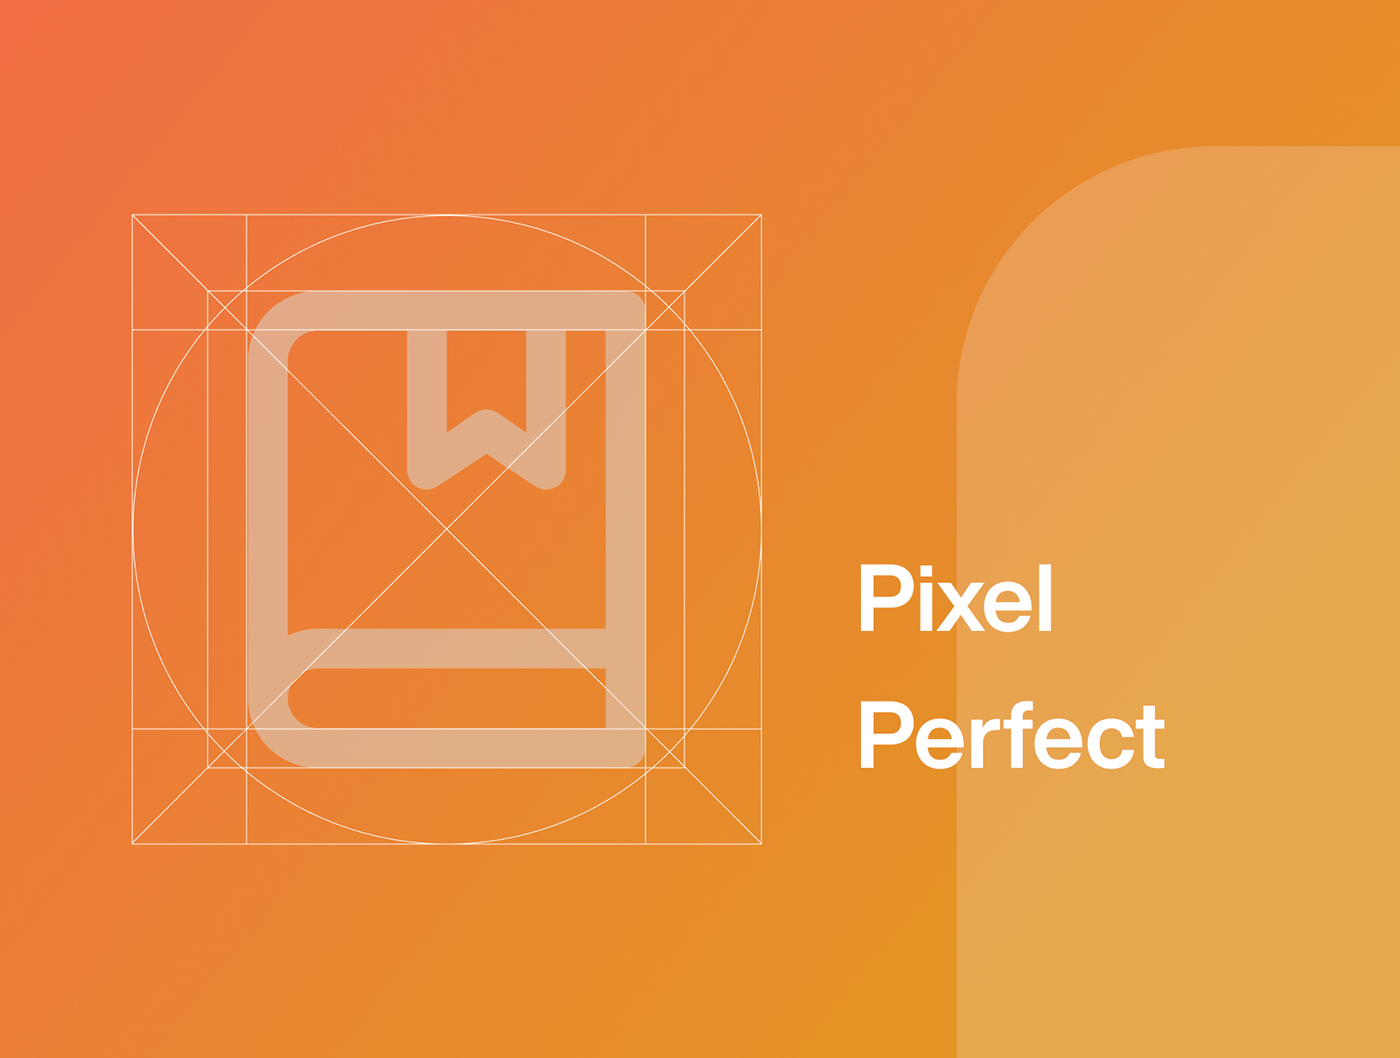 free icons Interface line icons Pixel Perfect sketch UI ux vector website icons